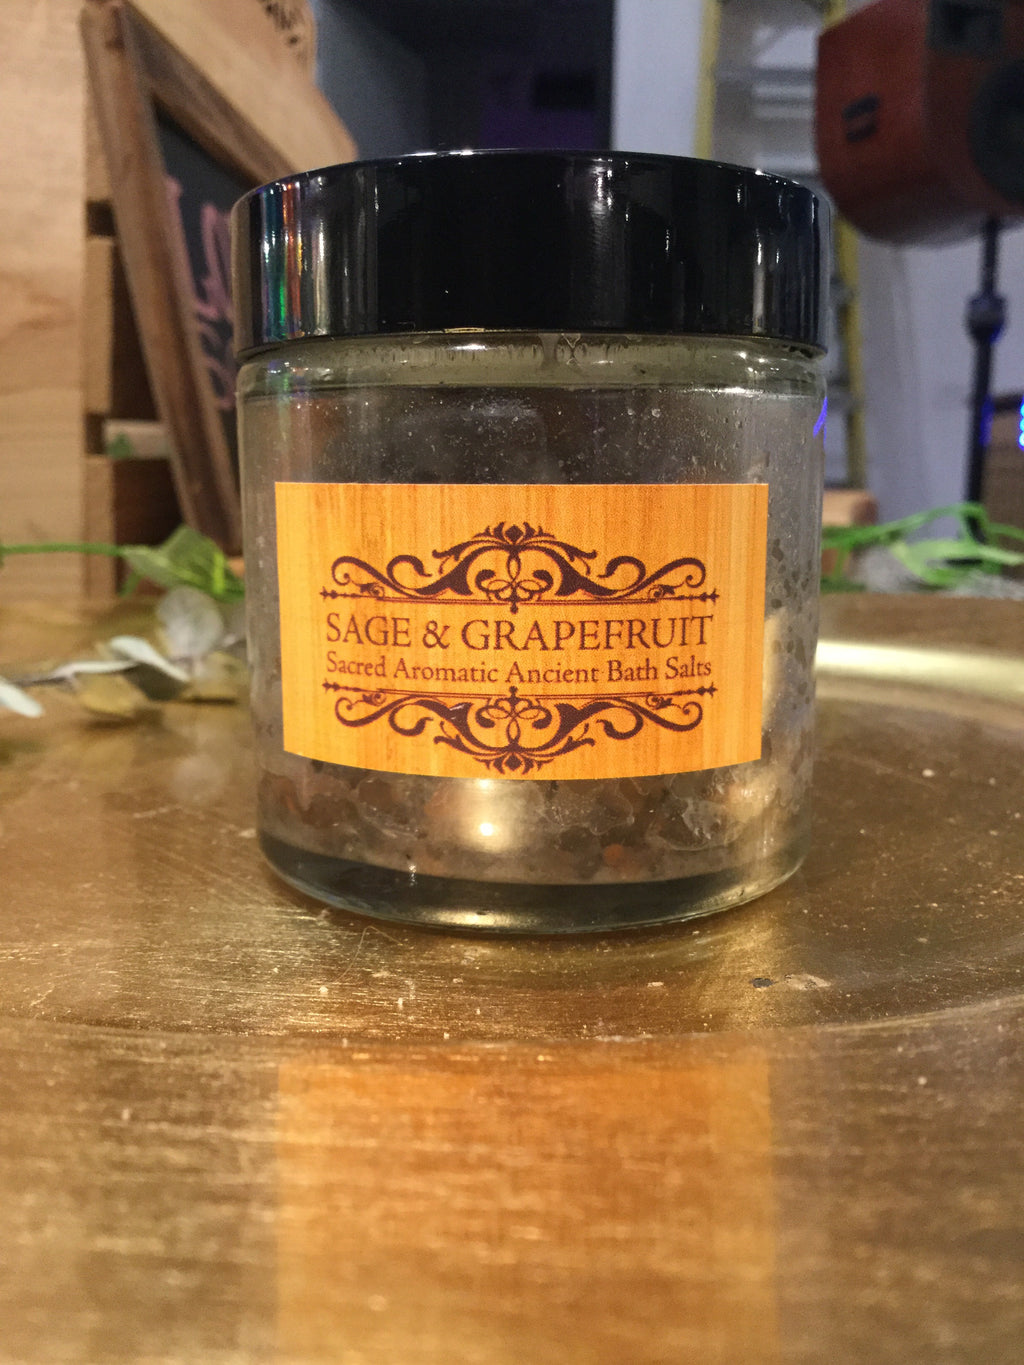 Recreation Bath Salt Sage & Grapefruit